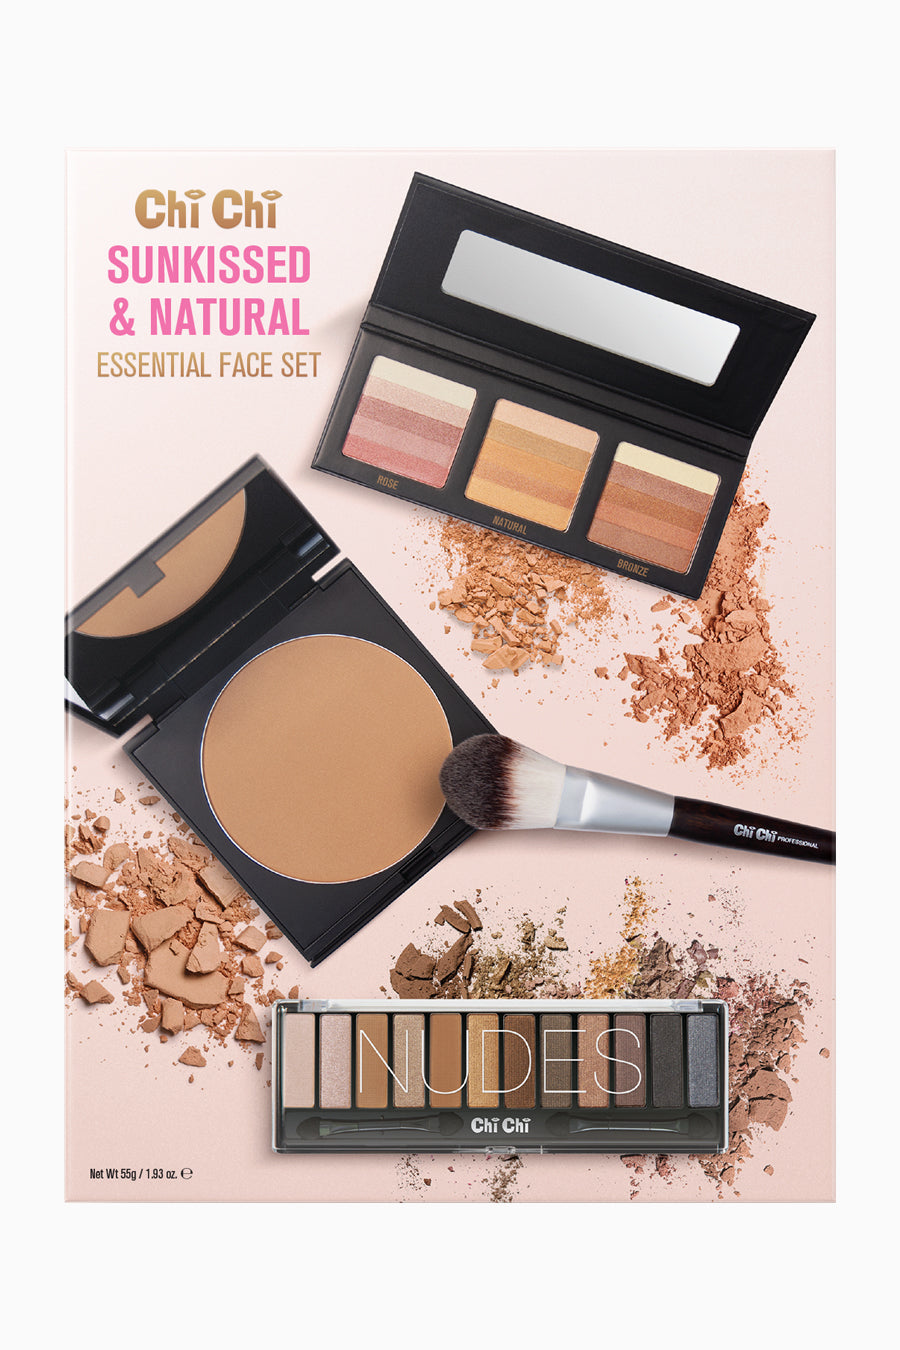 sunkissed-and-natural-essential-face-set